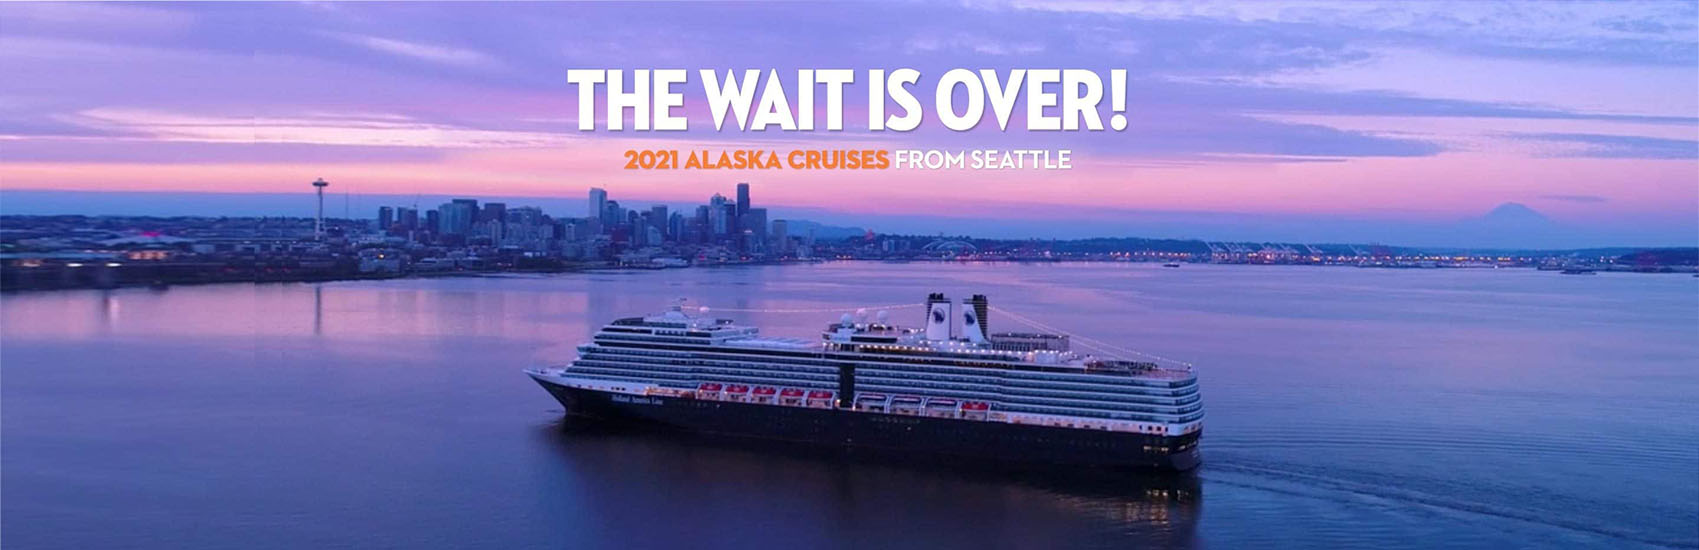 2021 Alaska Cruises from Seattle Now On Sale 0